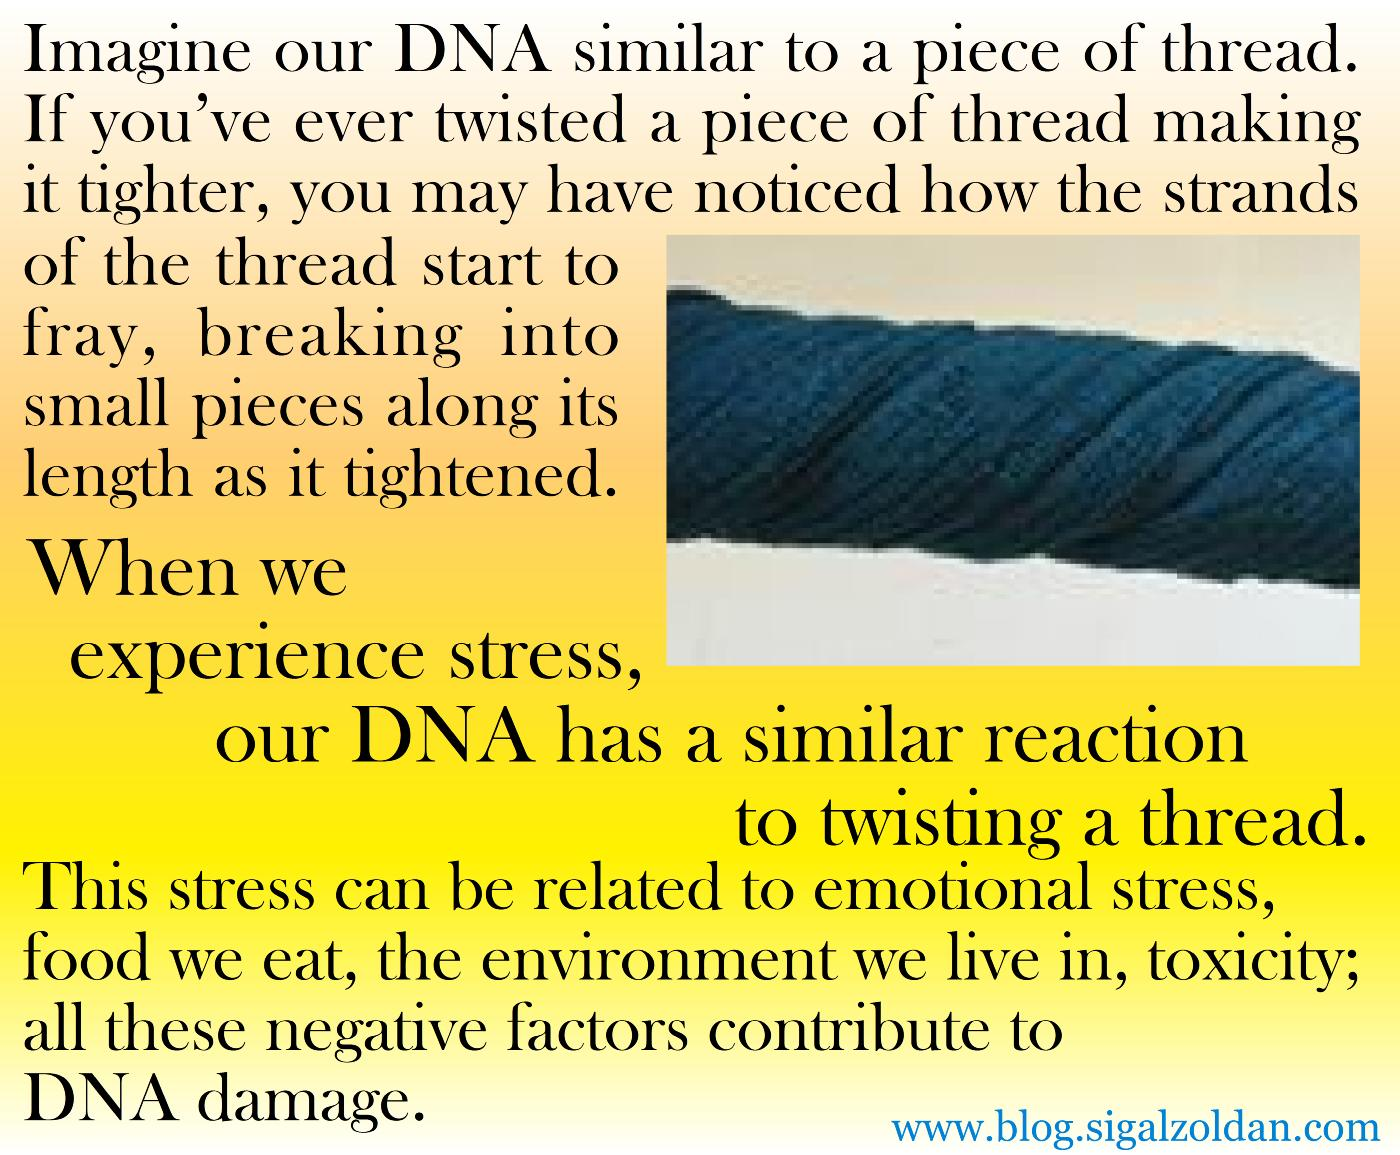 DNA-twisting a thread